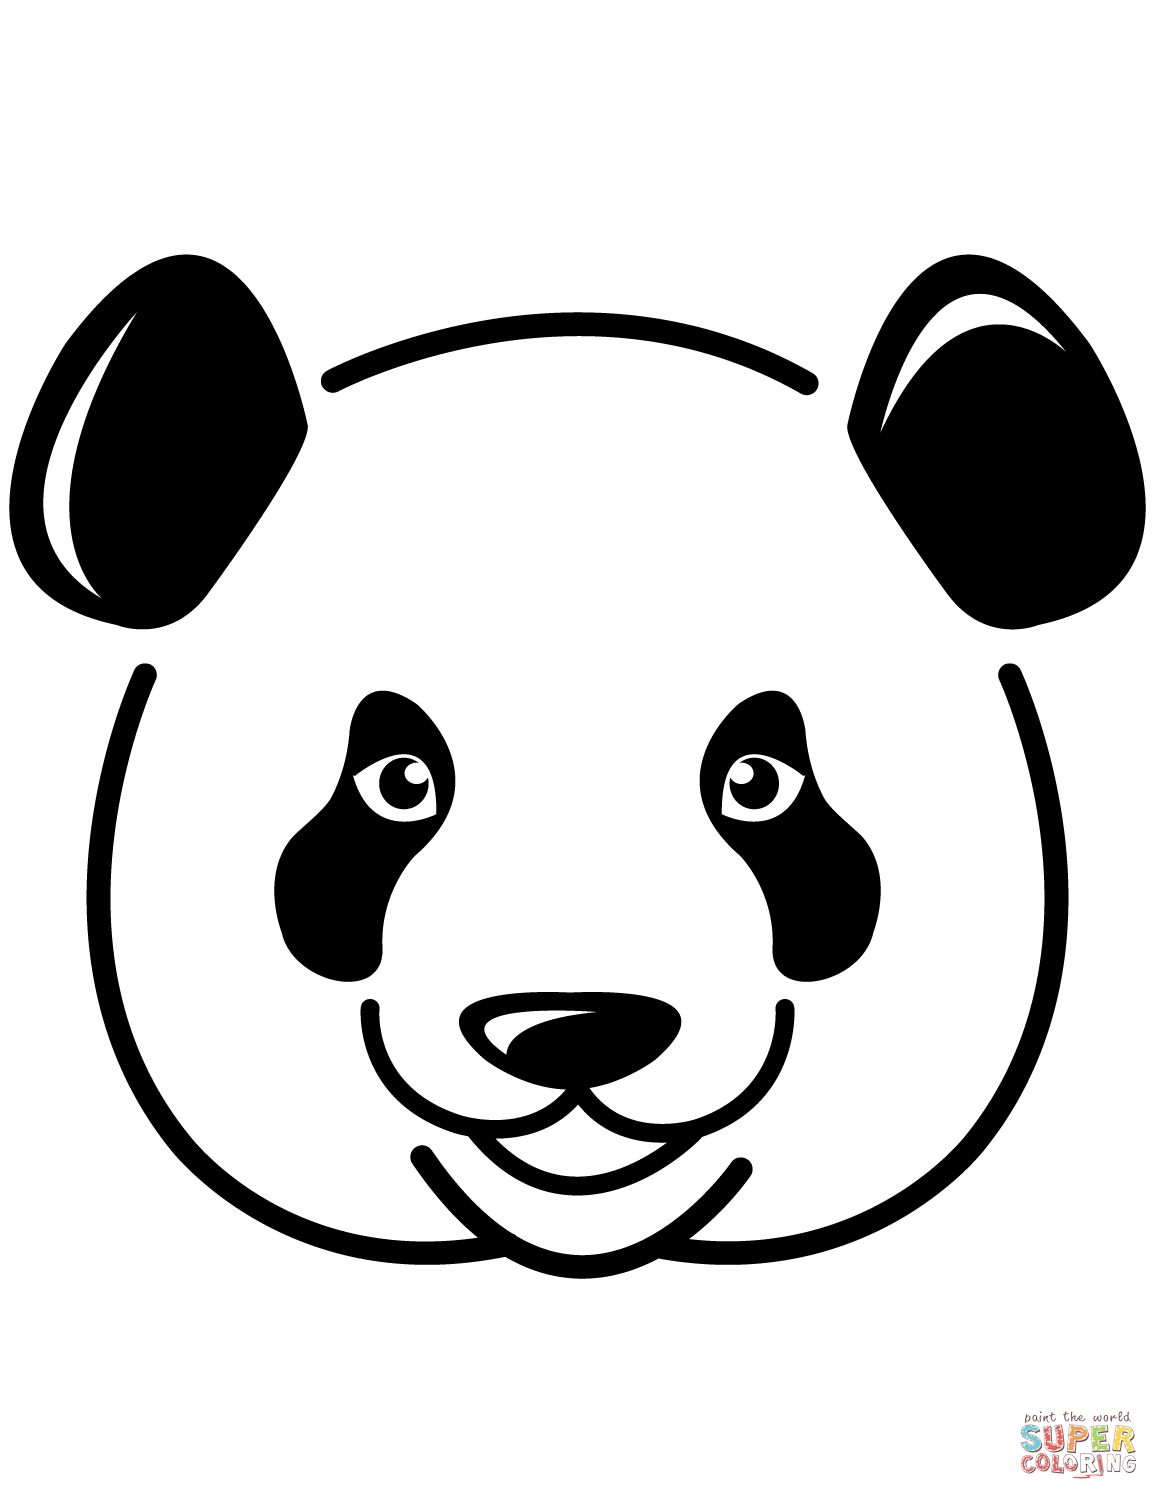 red panda face coloring page red panda on tree coloring page free printable coloring panda page red face coloring